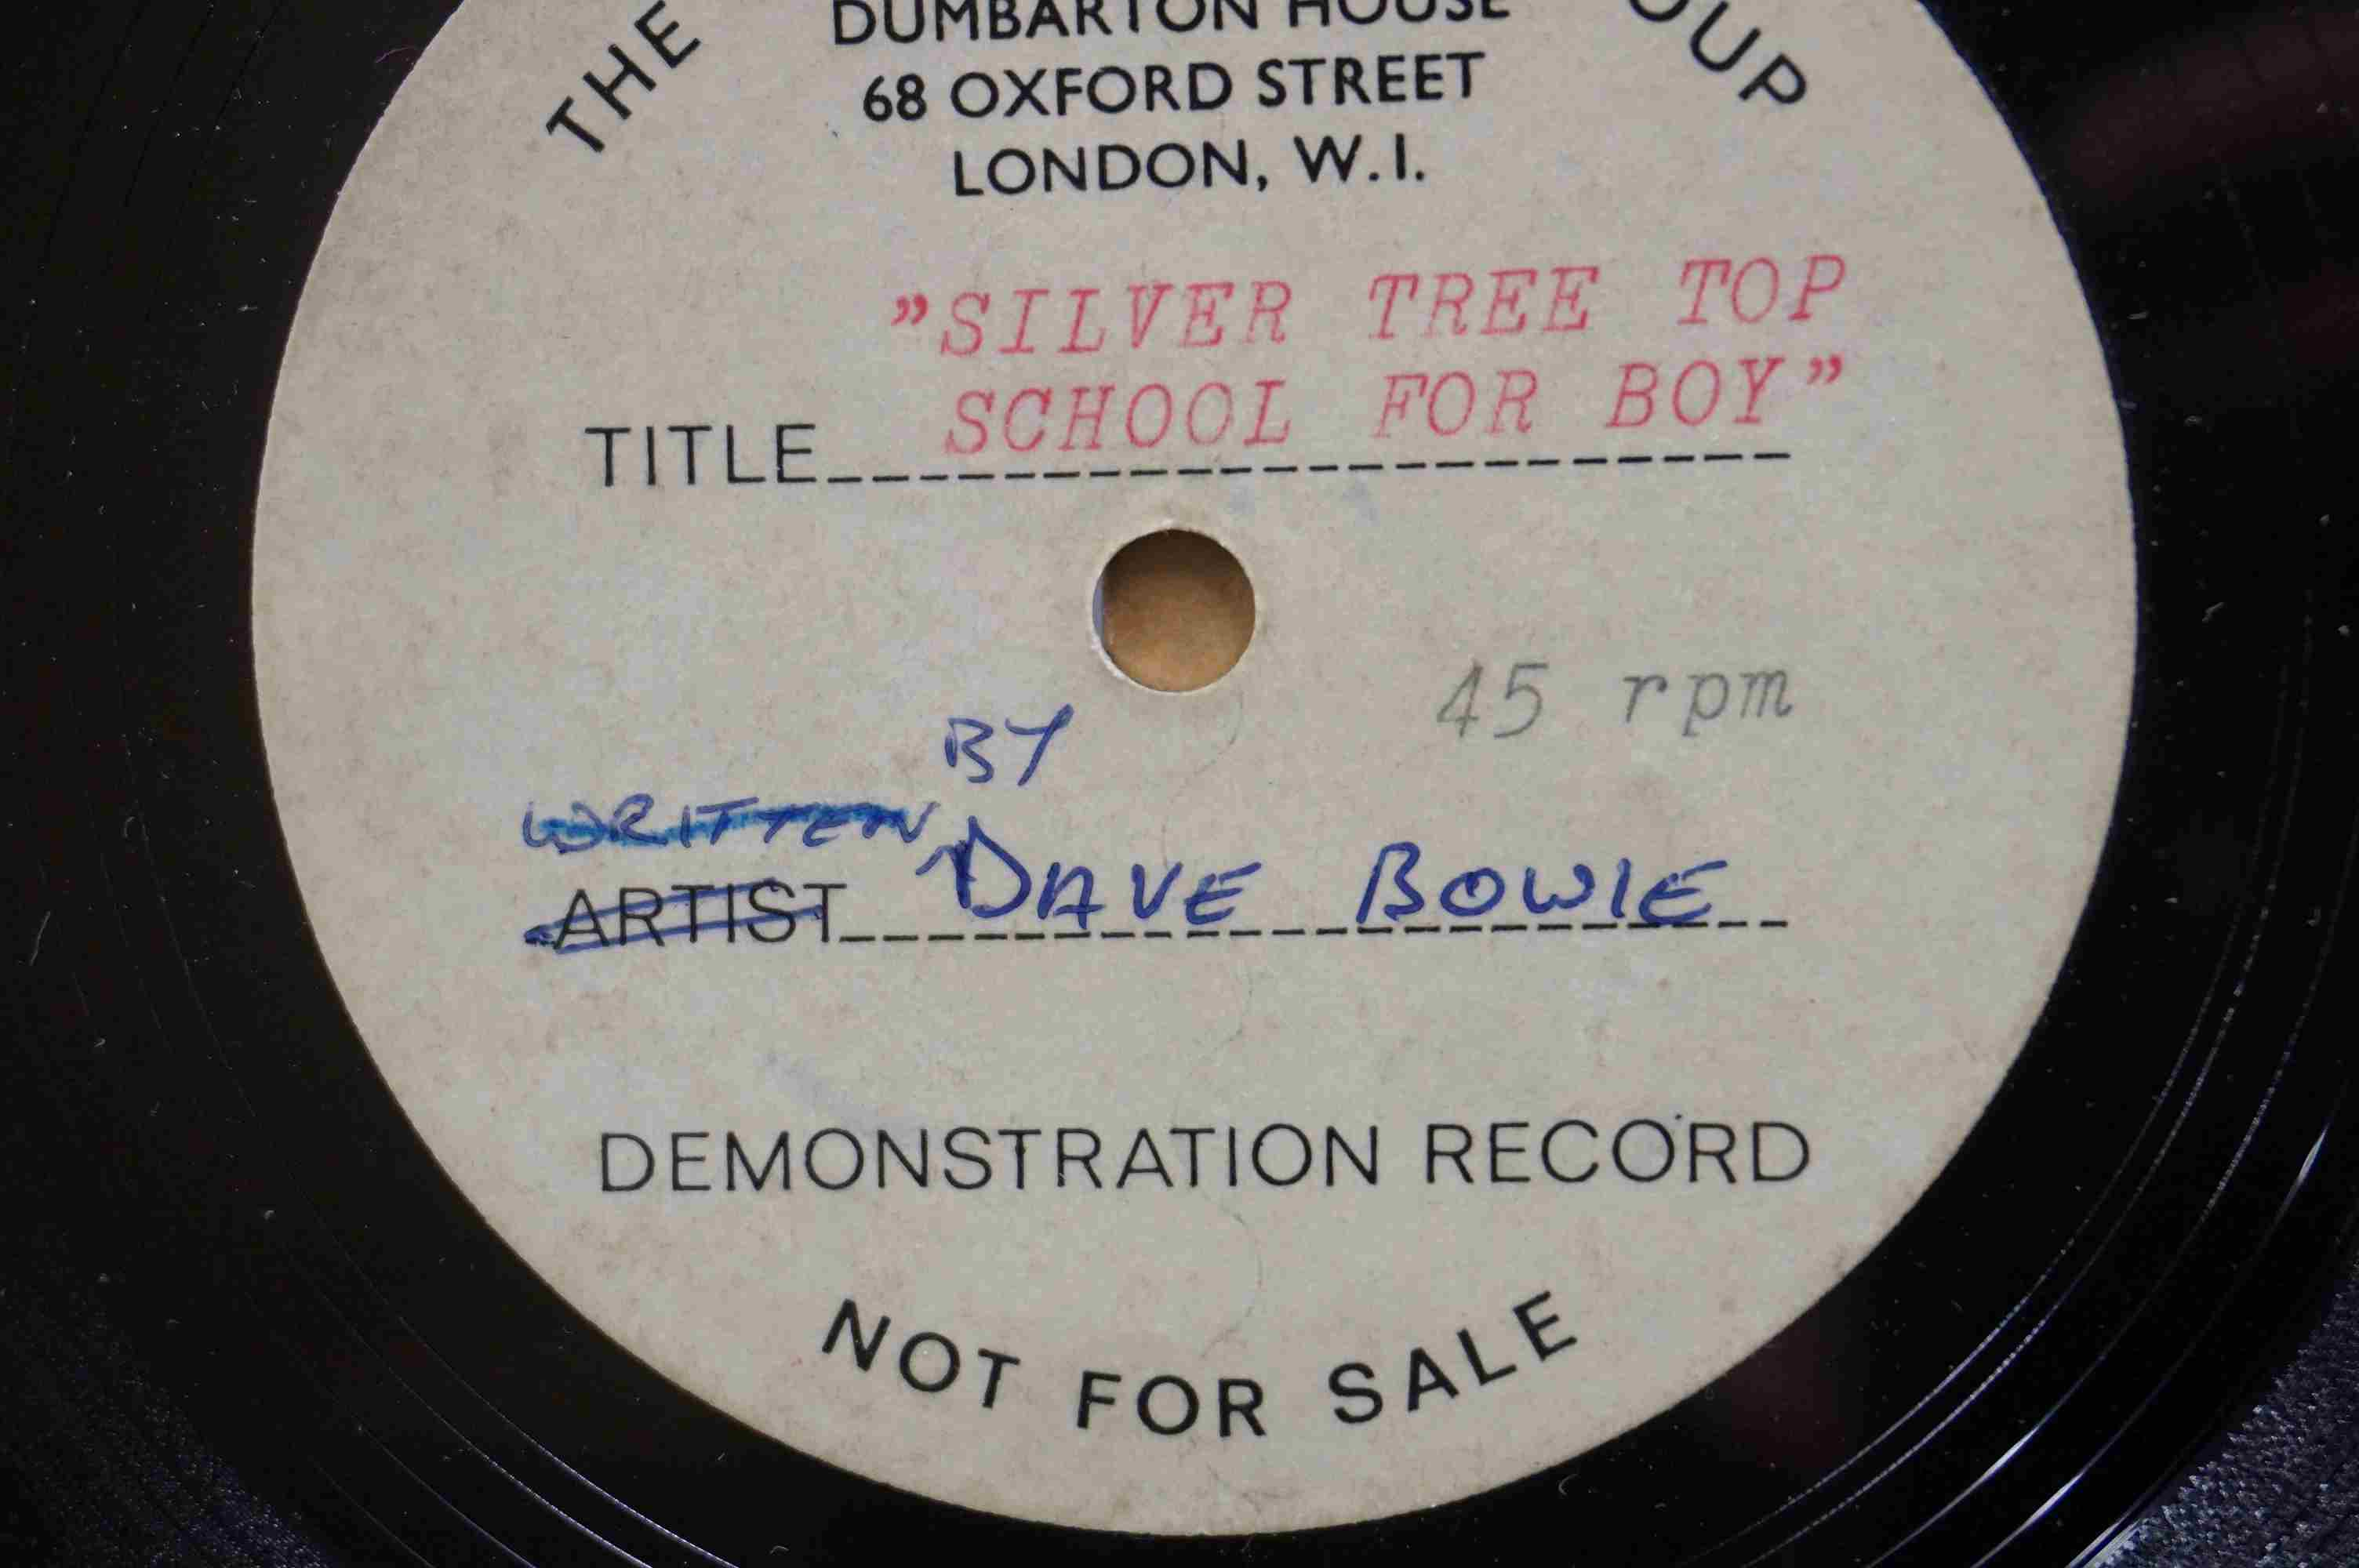 Vinyl - David Bowie - A Single sided acetate demo for the song ' Silver Tree Top School For - Image 3 of 5